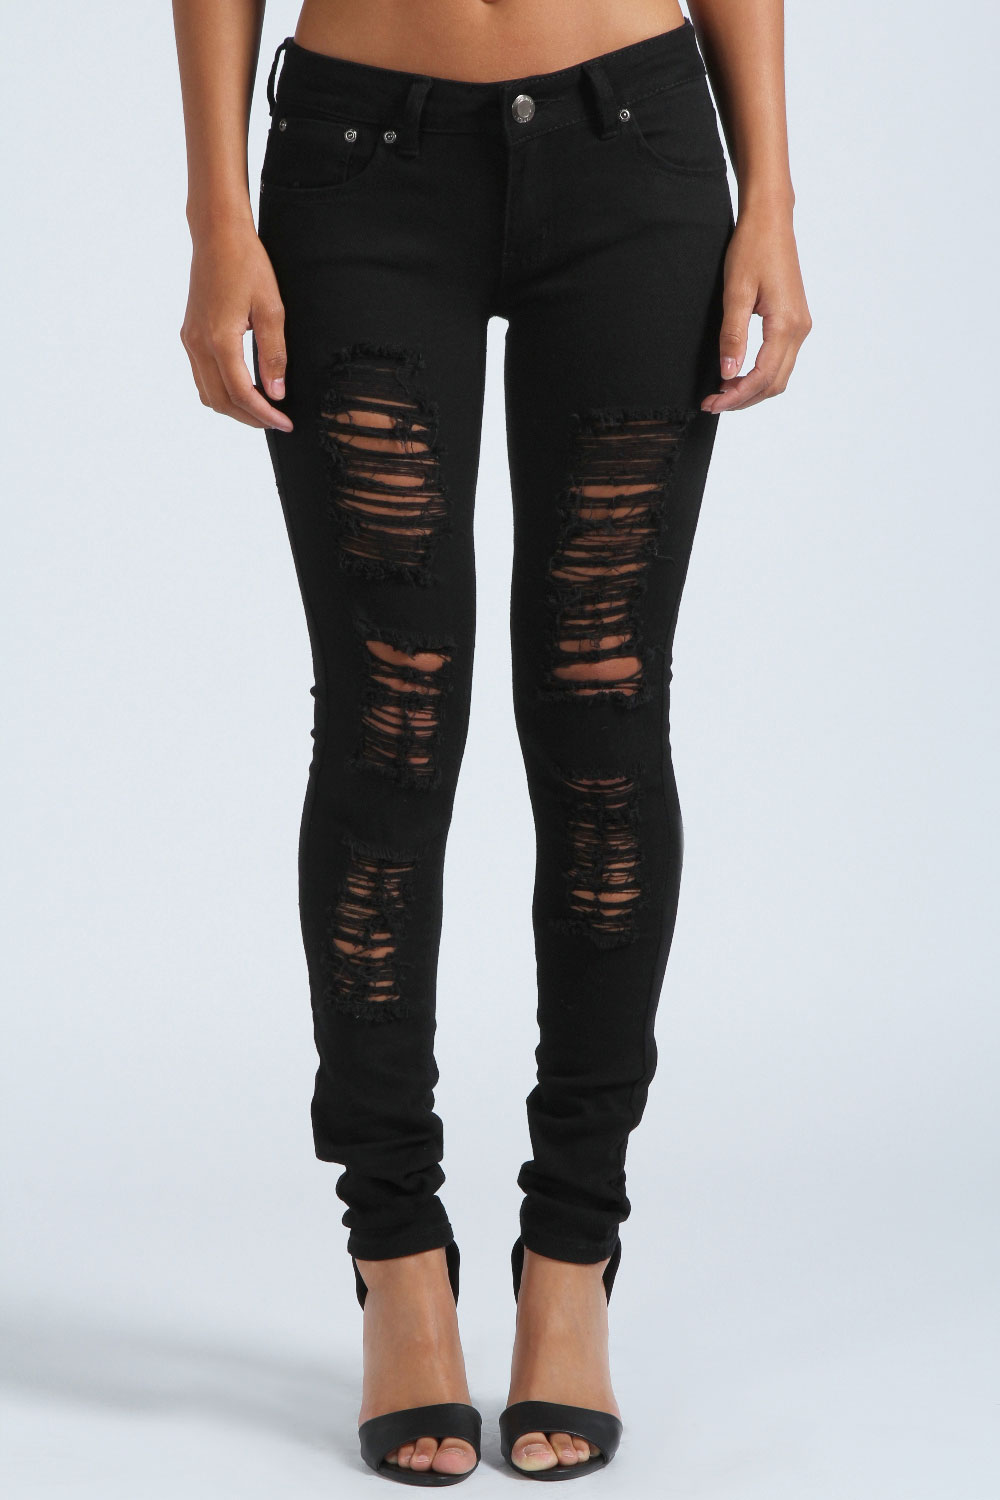 Shop ripped jeans online at hereaupy06.gq, find the latest styles of cheap skinny, black and high waisted ripped jeans at discount price.